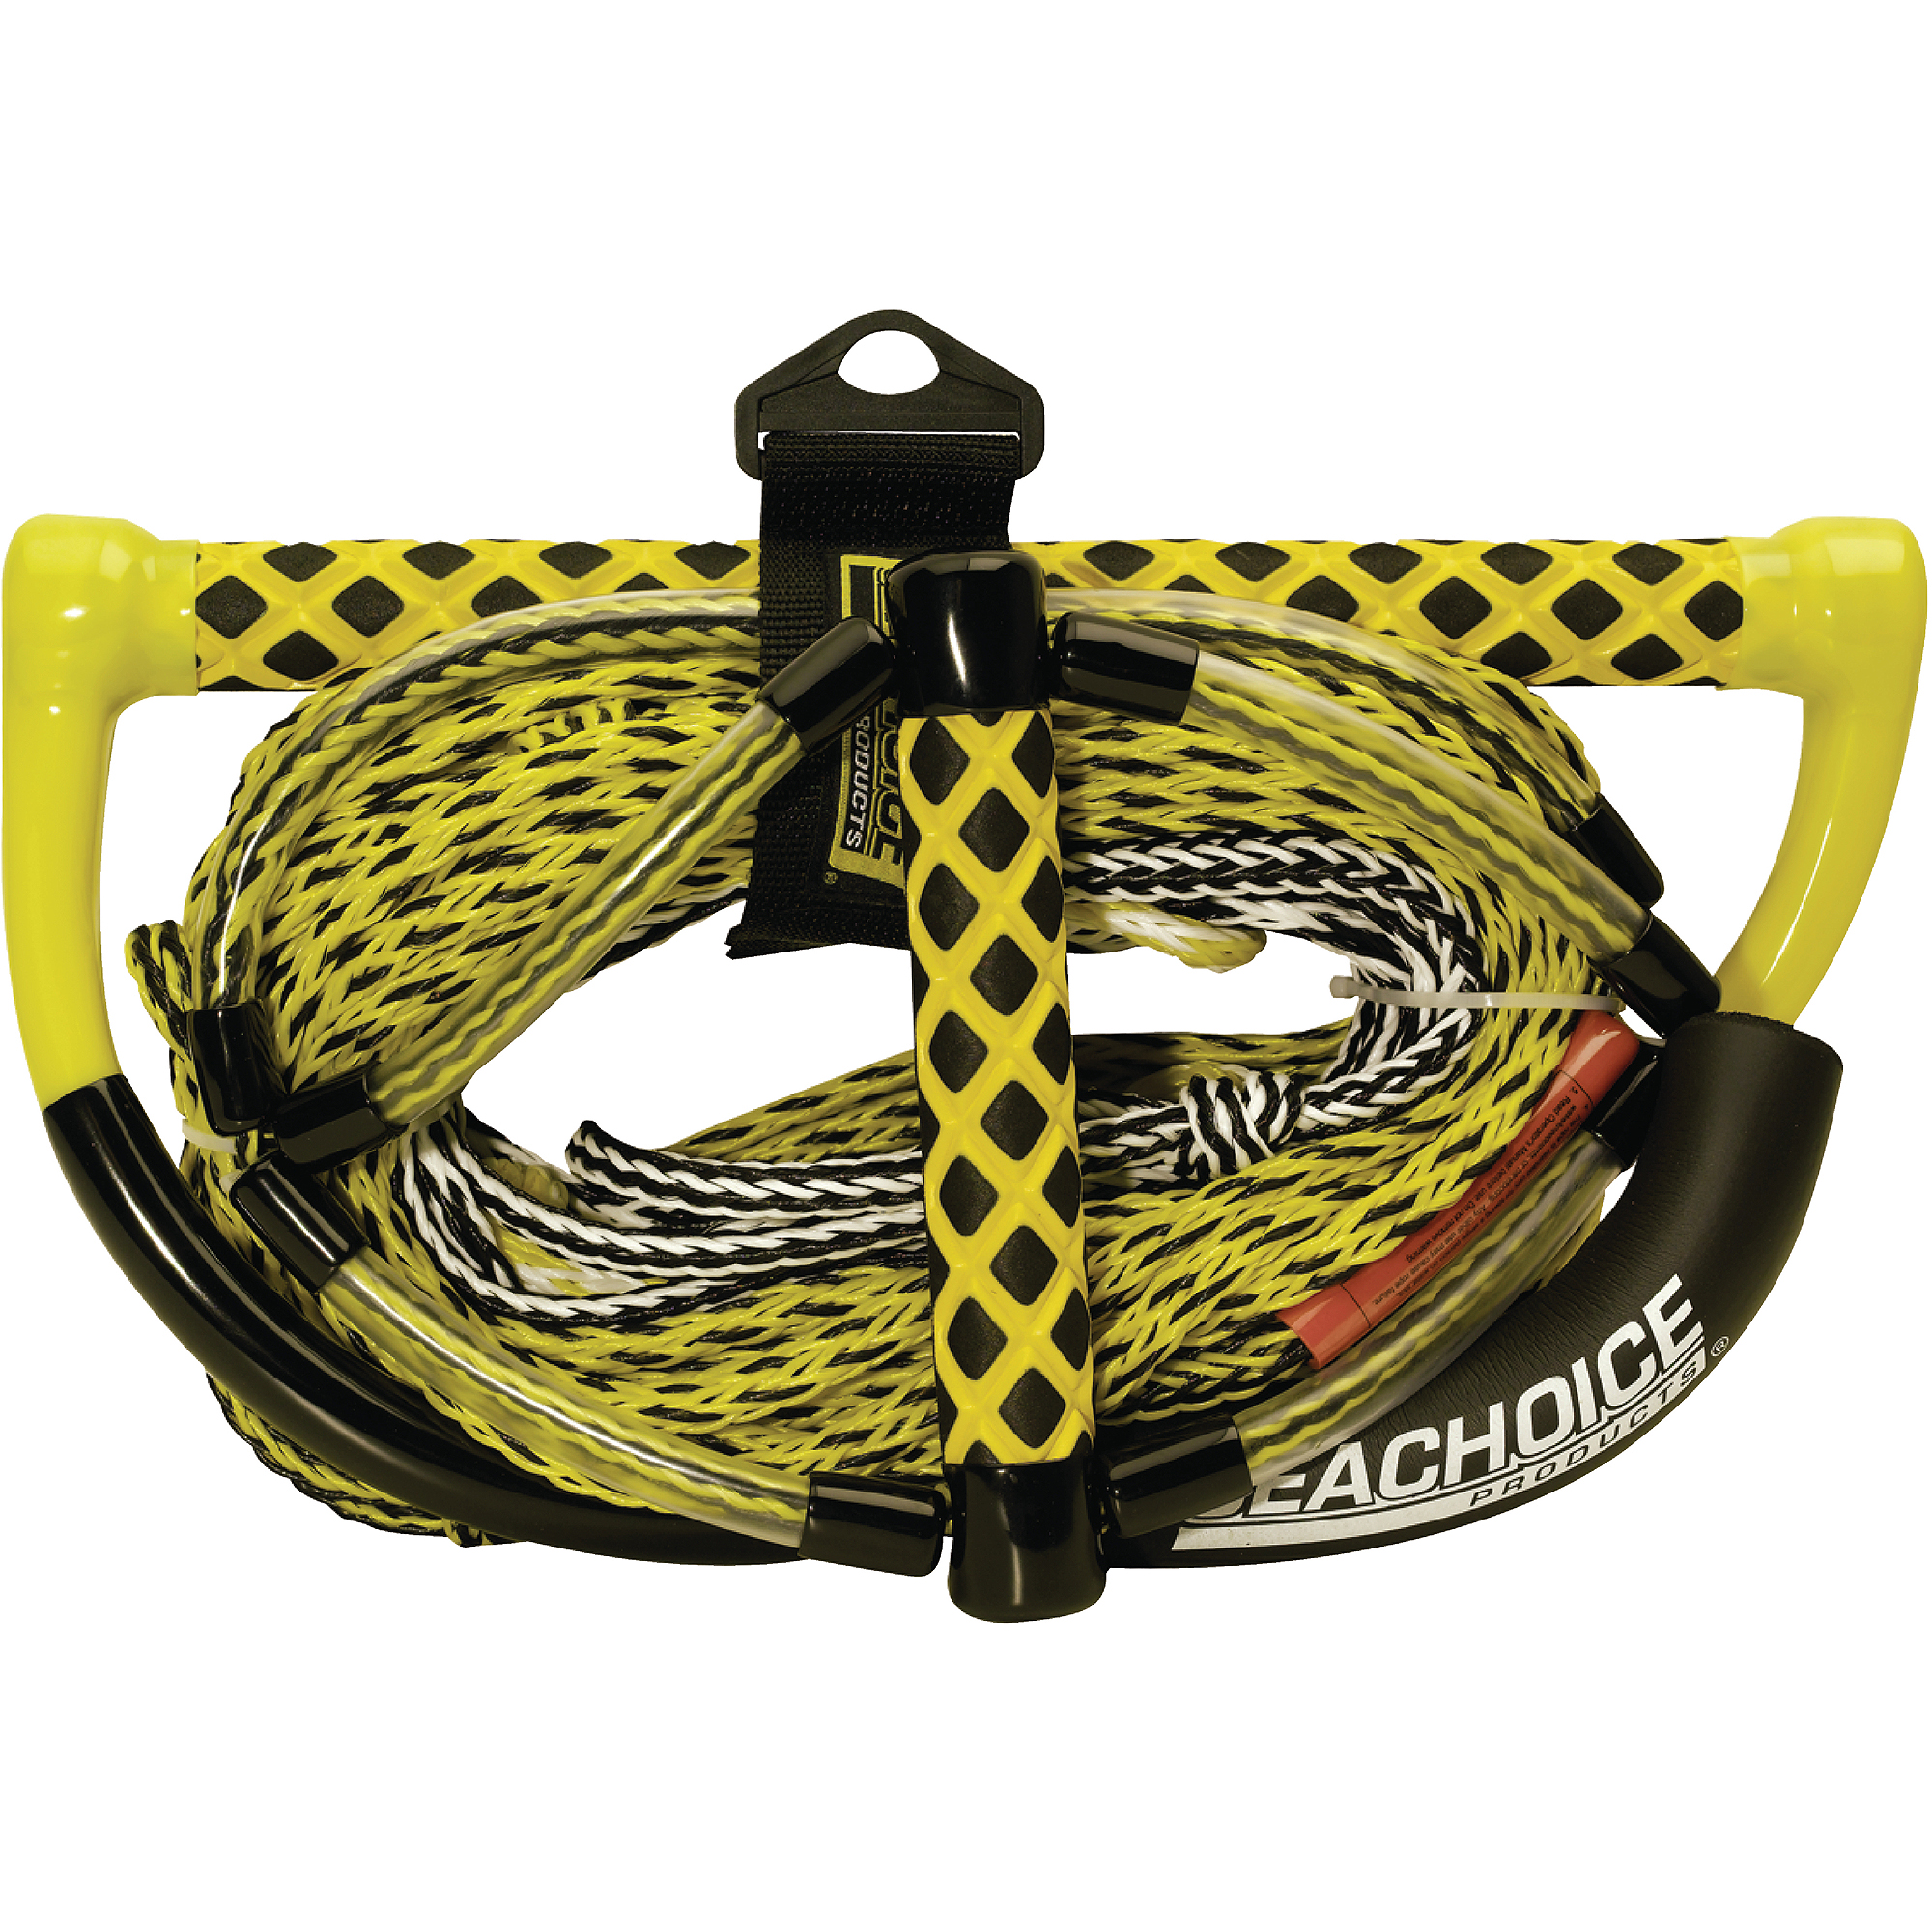 Seachoice 5-Section Wakeboard Rope with Trick Handle, 75' by Seachoice Products